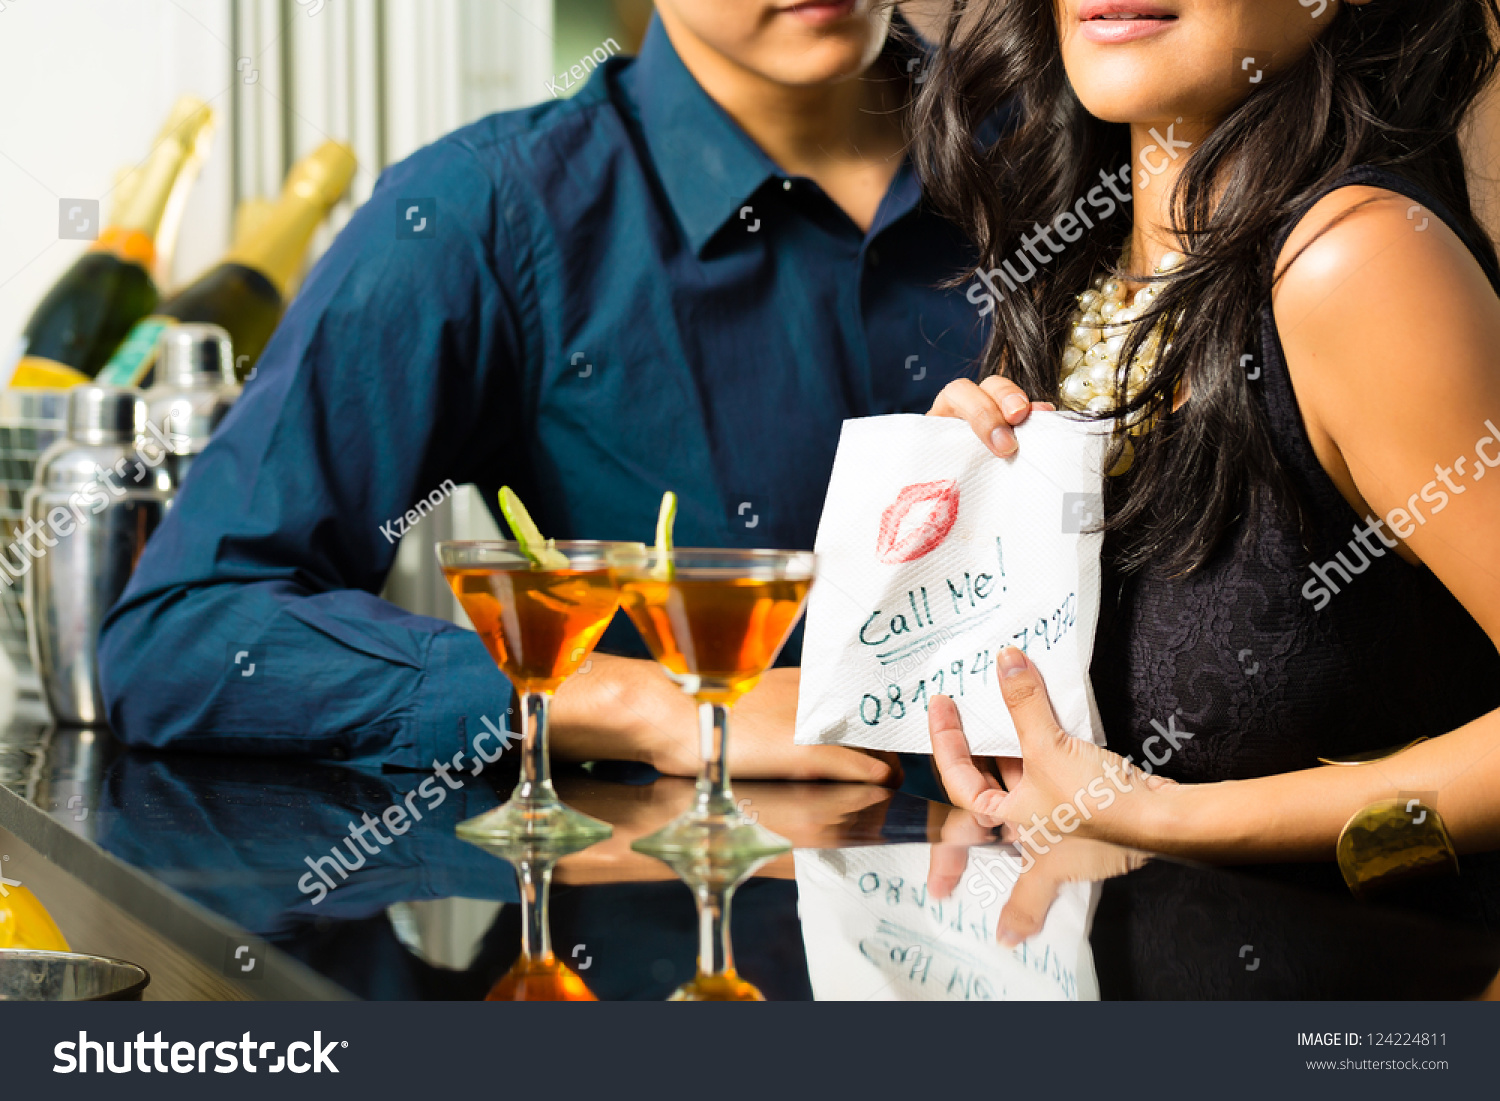 bannock asian single men So its not only that white women have become obese but asian men have become undateable in dating sites black men have similar response rates by asian women to asian.